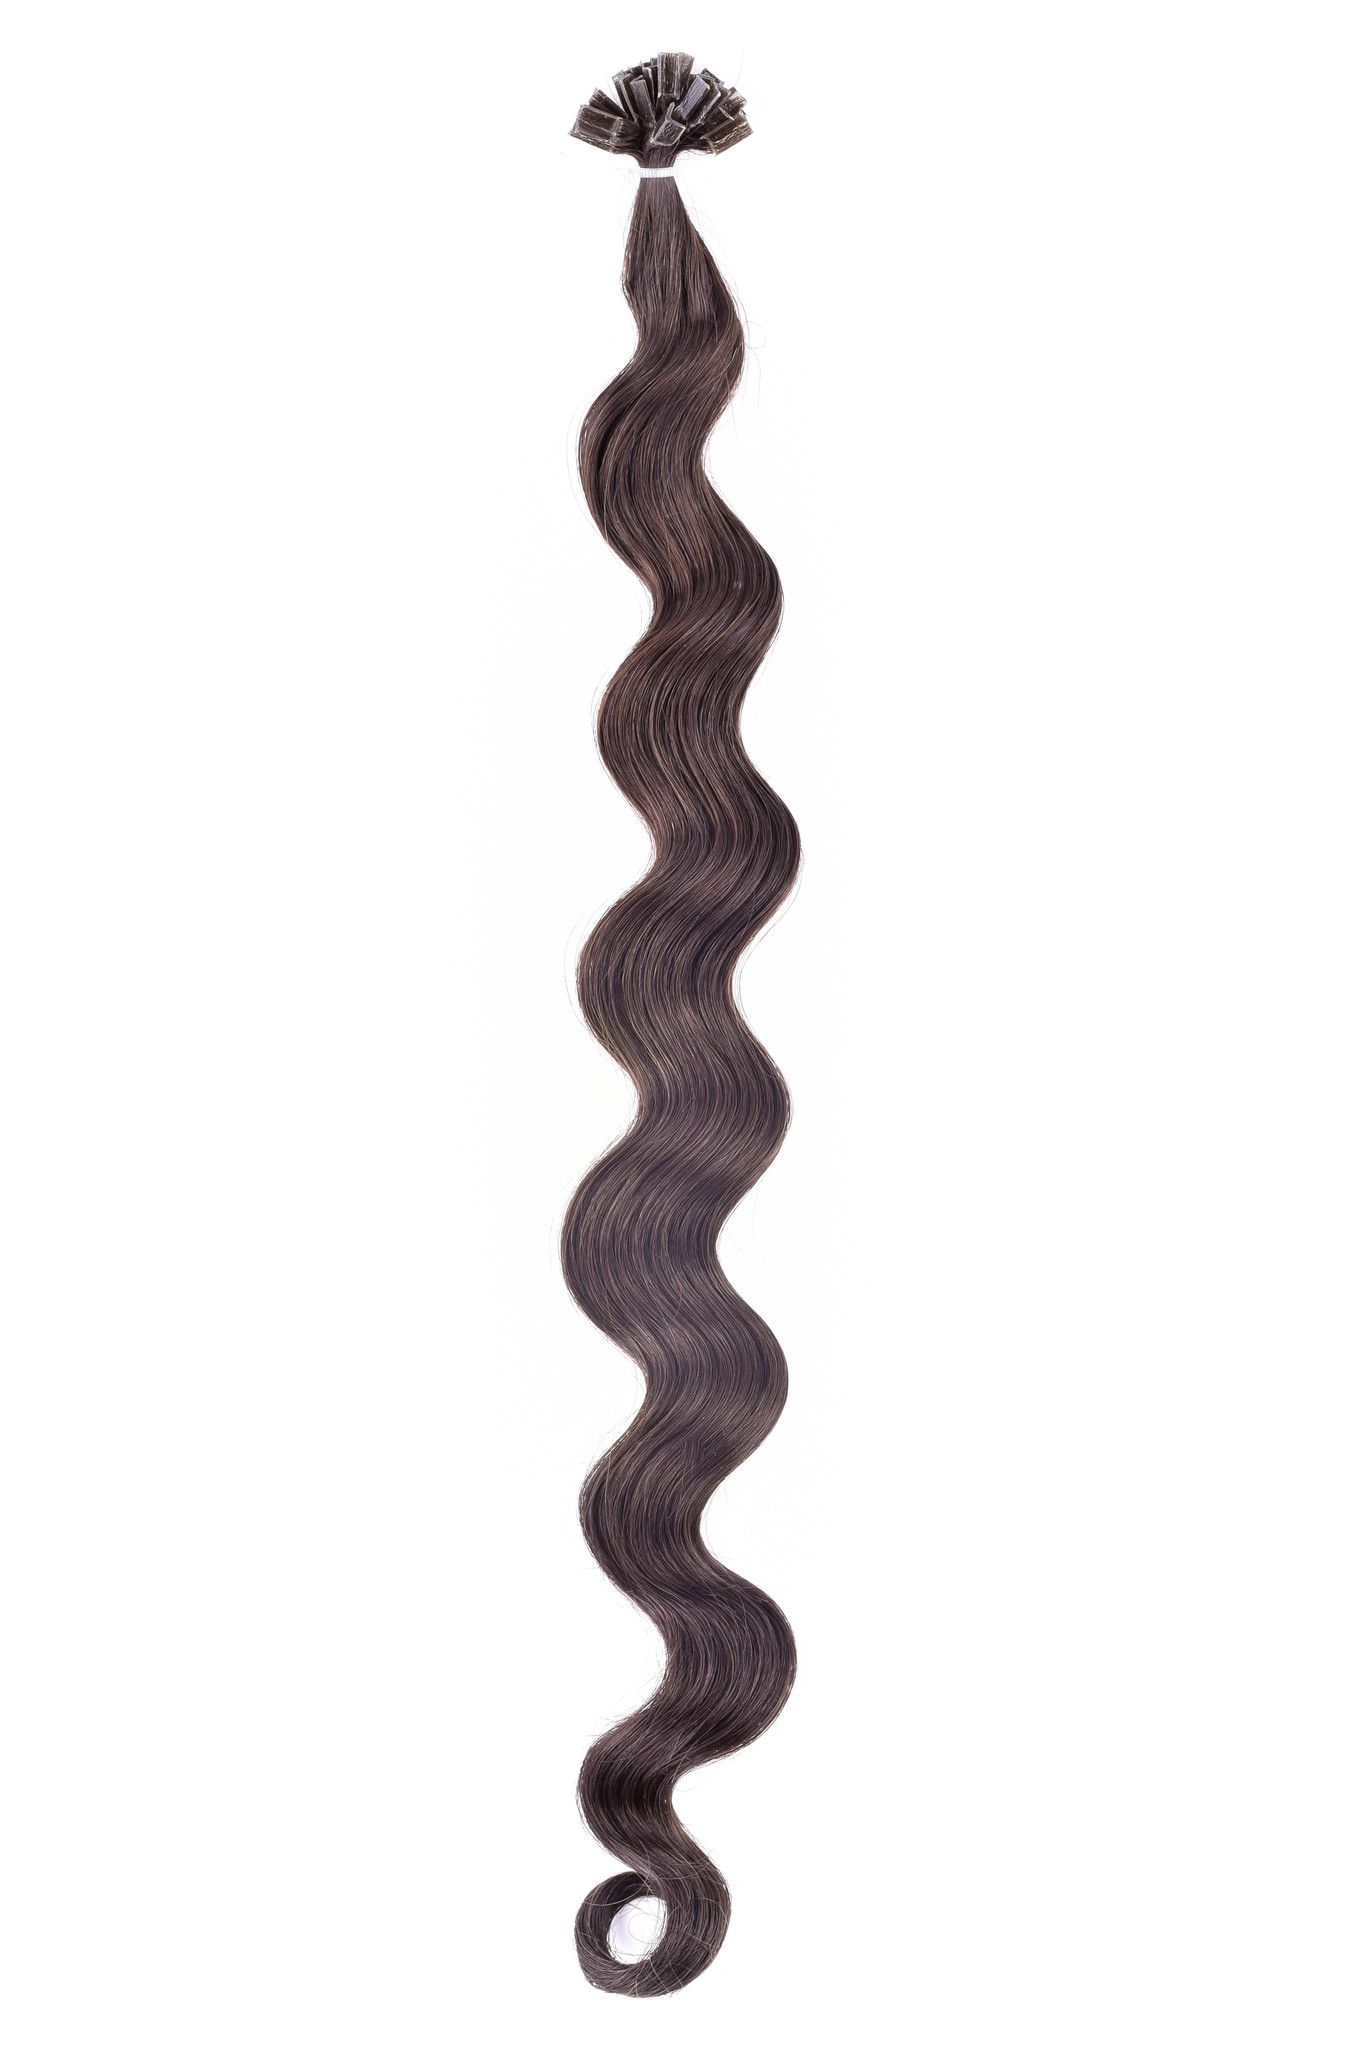 SilverFox Wax Extensions Loose Wave 55cm #6 Light Chestnut Brown